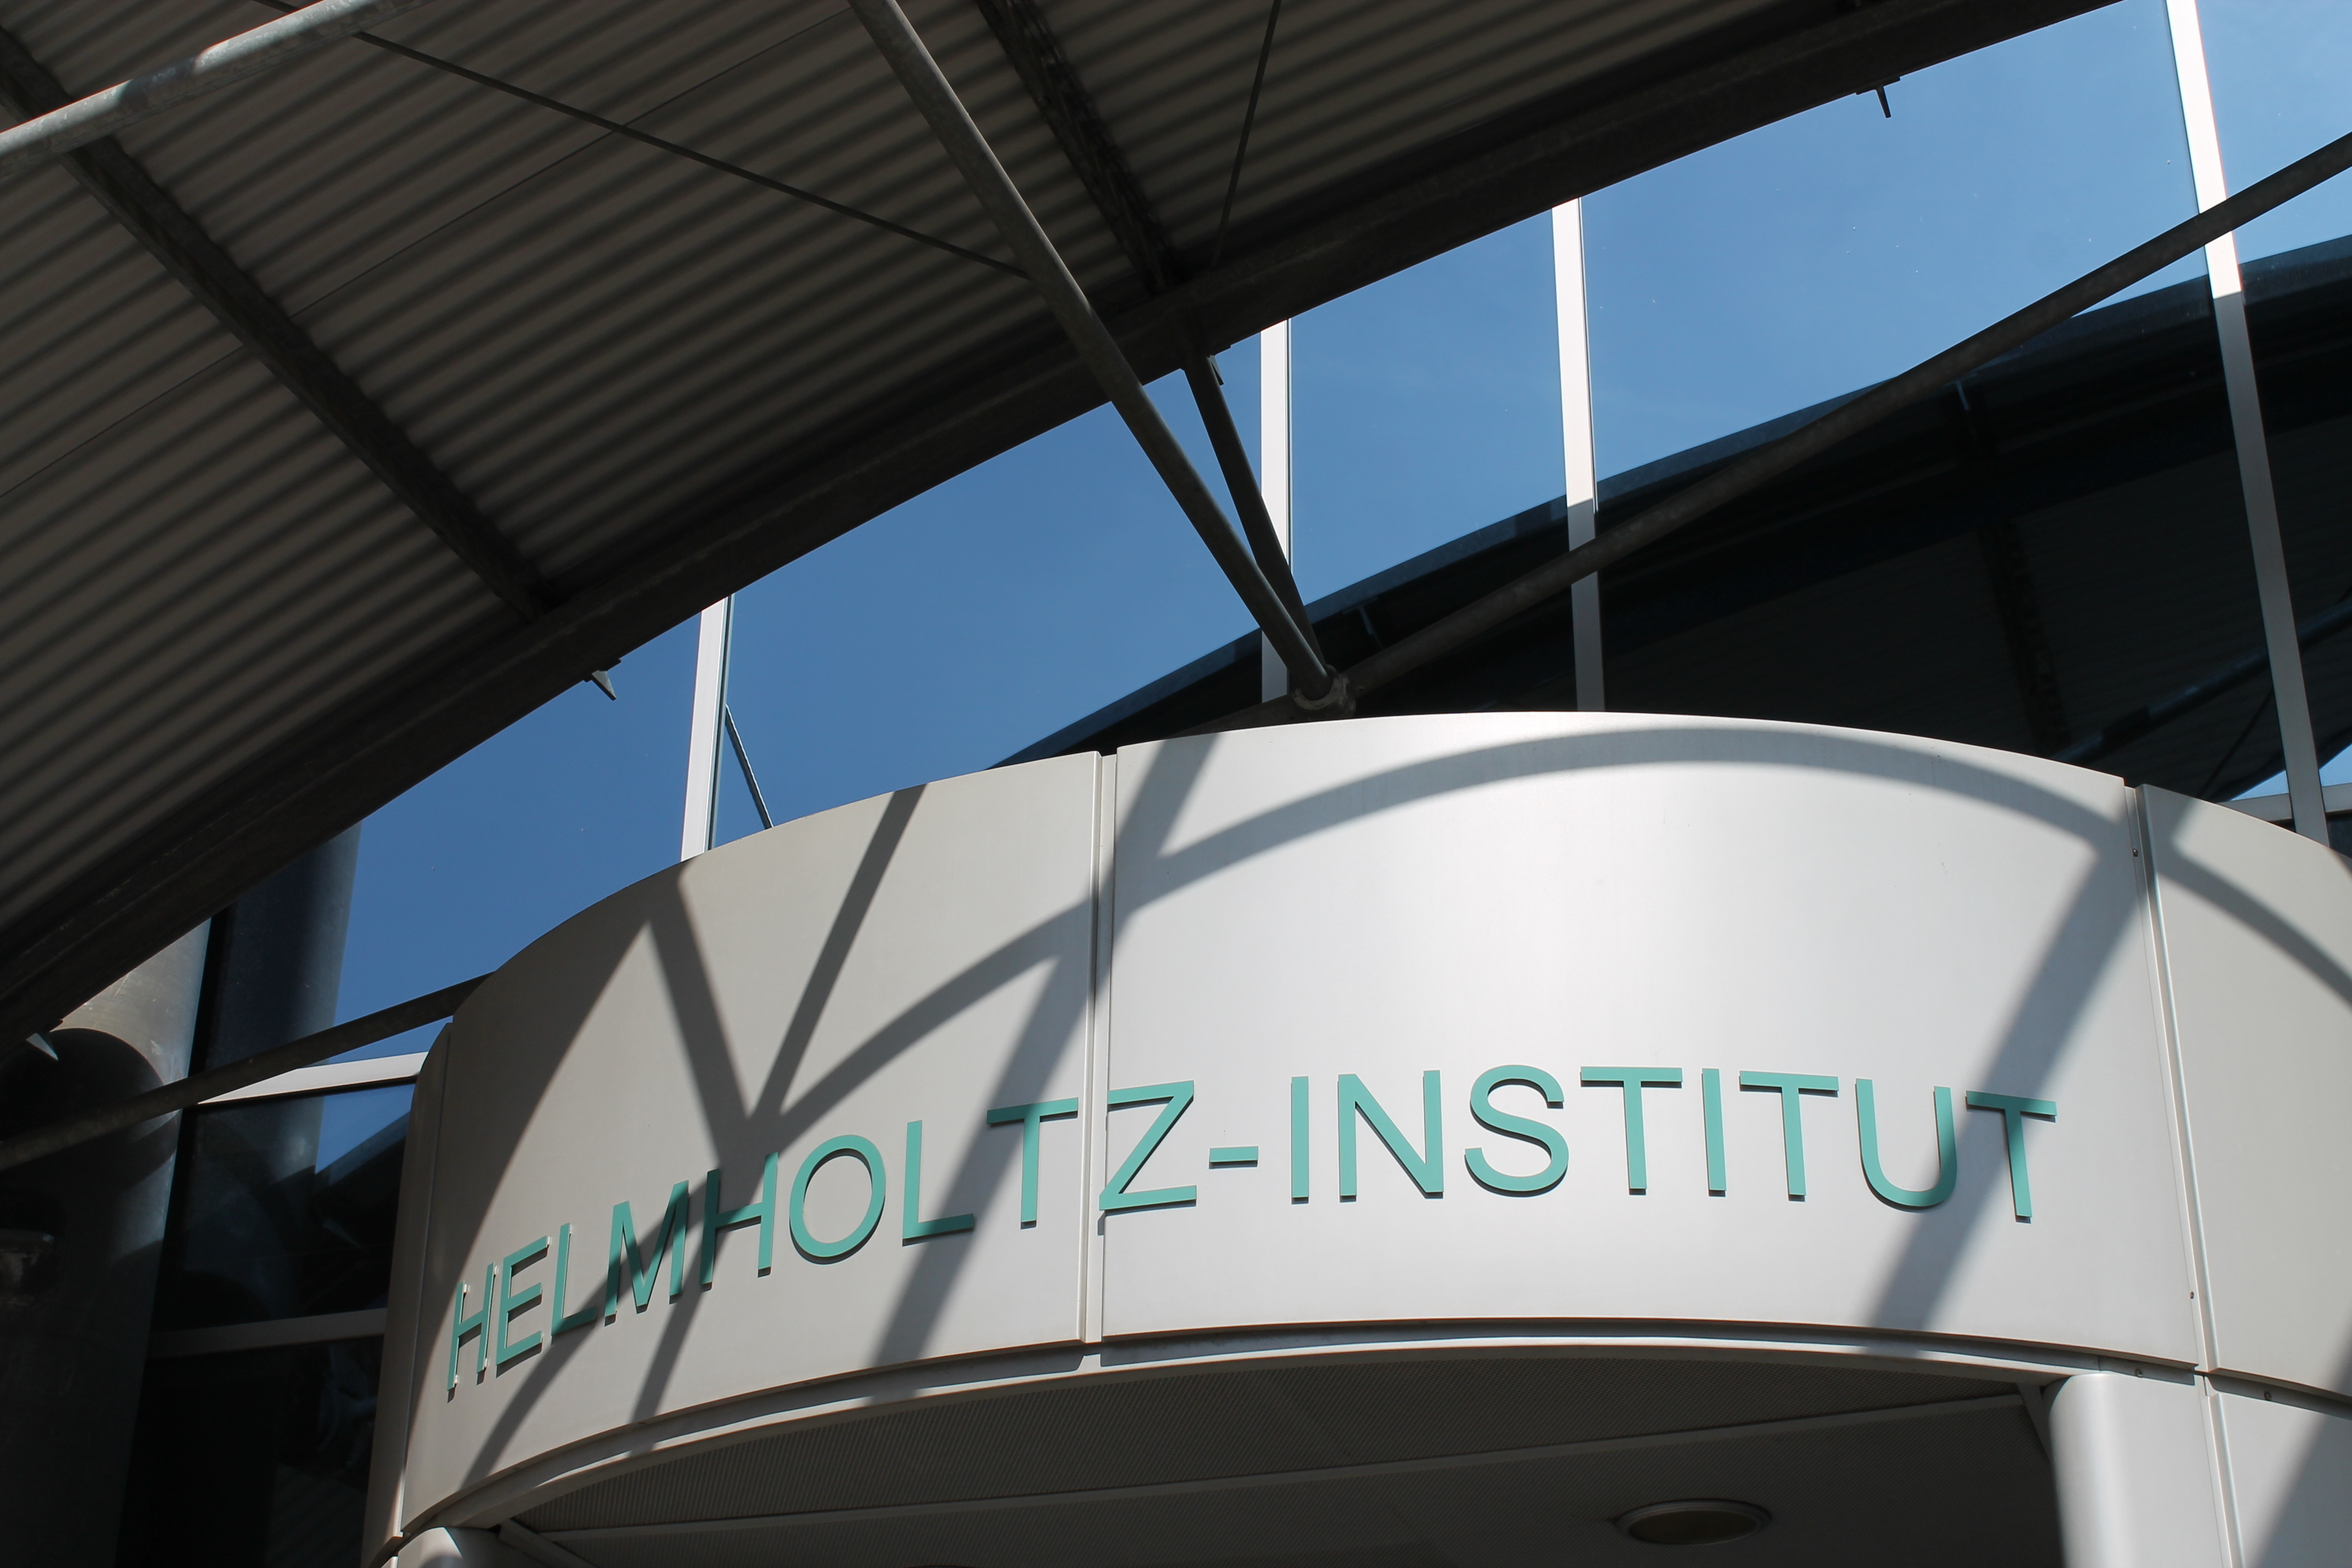 Helmholtz-Institute building